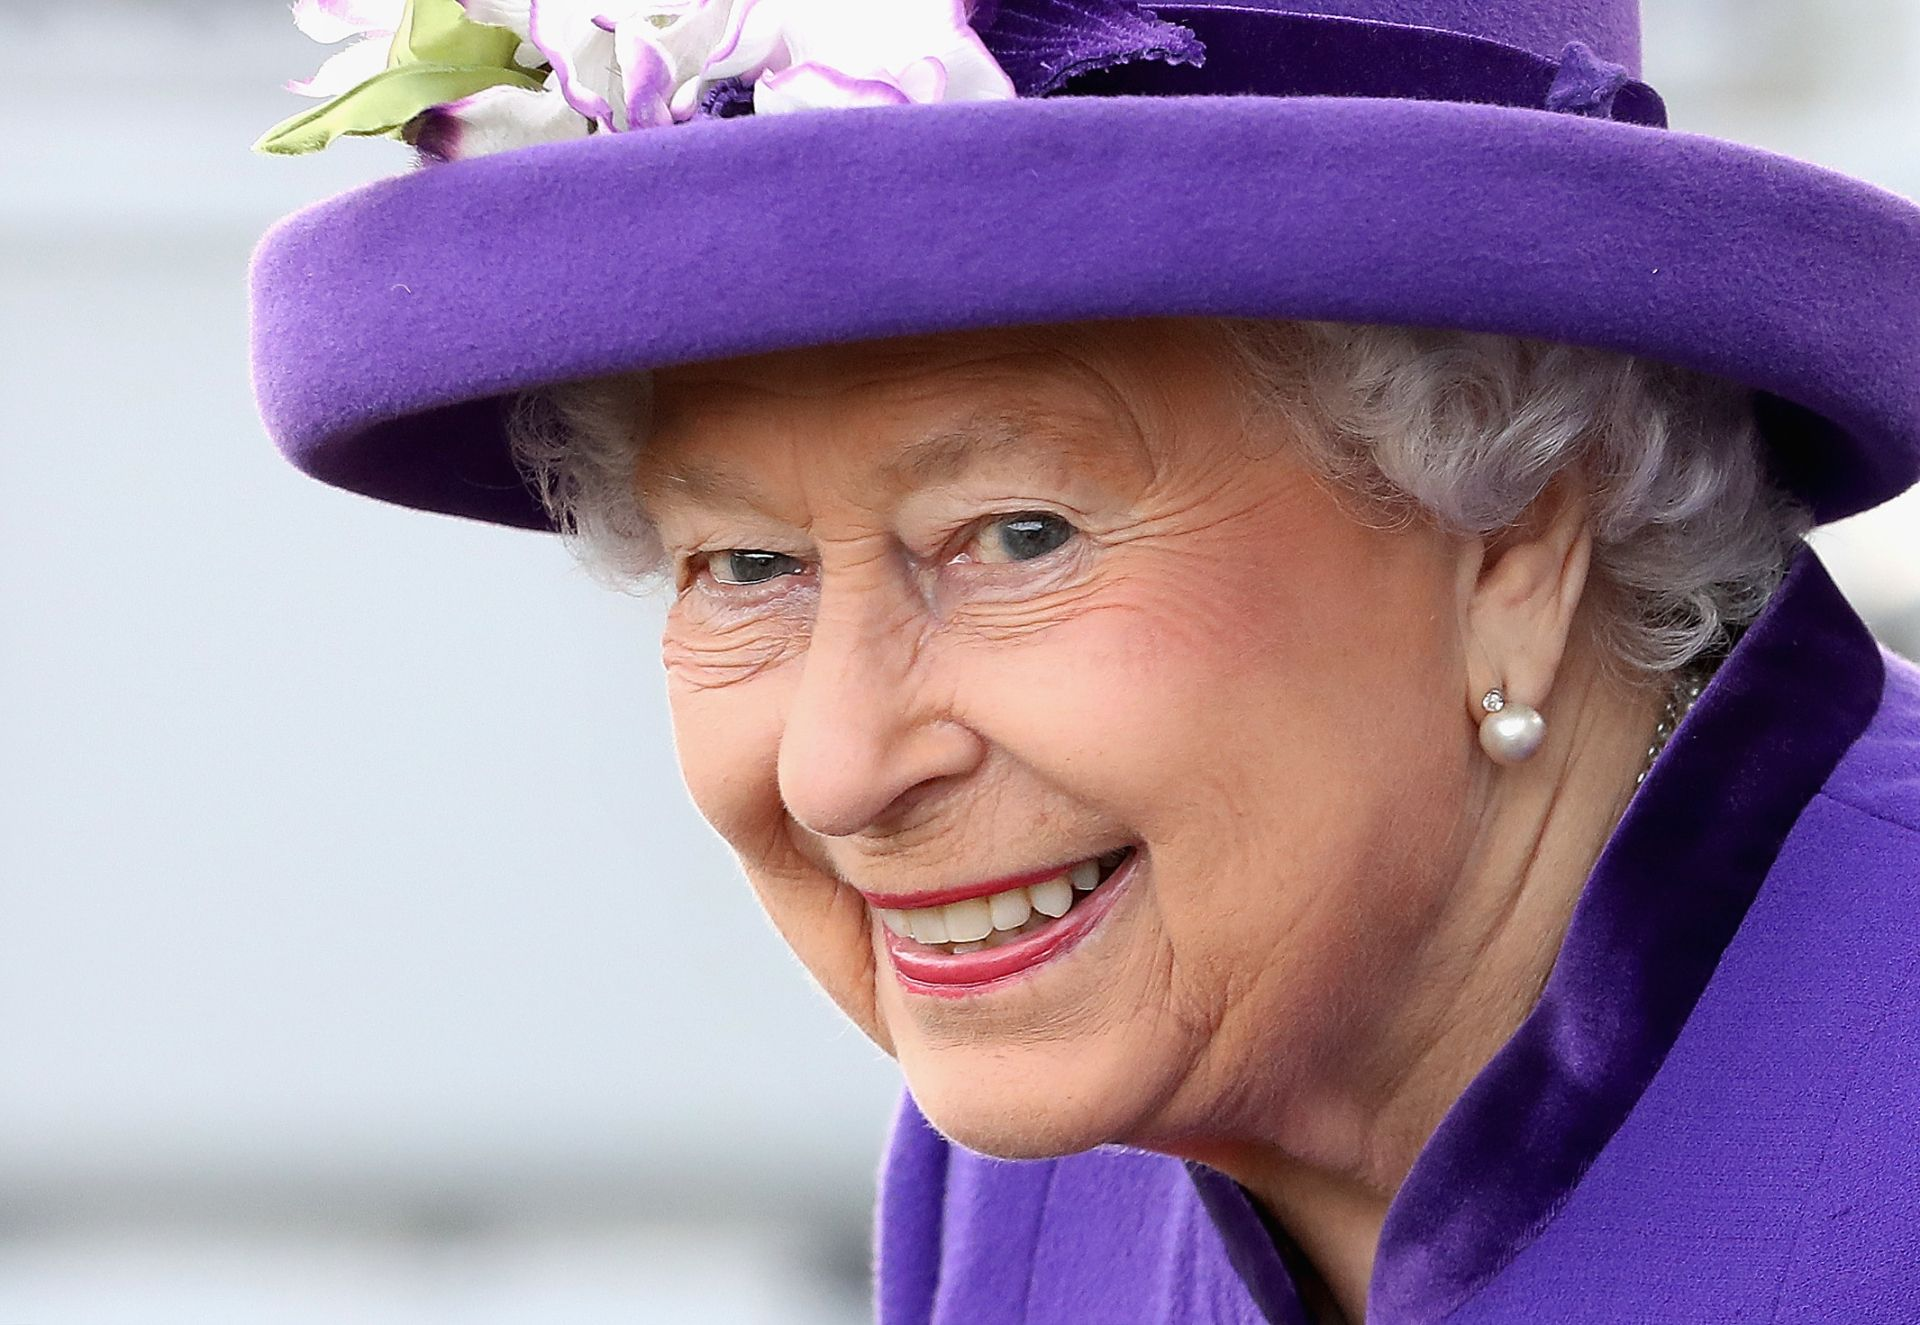 (FILES) In this file photo taken on December 07, 2017, Britain's Queen Elizabeth II attends the Commissioning Ceremony for the Royal Navy aircraft carrier HMS Queen Elizabeth at HM Naval Base in Portsmouth, southern England . Queen Elizabeth II is to mark her 92nd birthday on April 21, 2018 with traditional gun salutes and a Commonwealth-themed charity concert featuring Tom Jones, Kylie and Shaggy. / AFP PHOTO / POOL / Chris Jackson